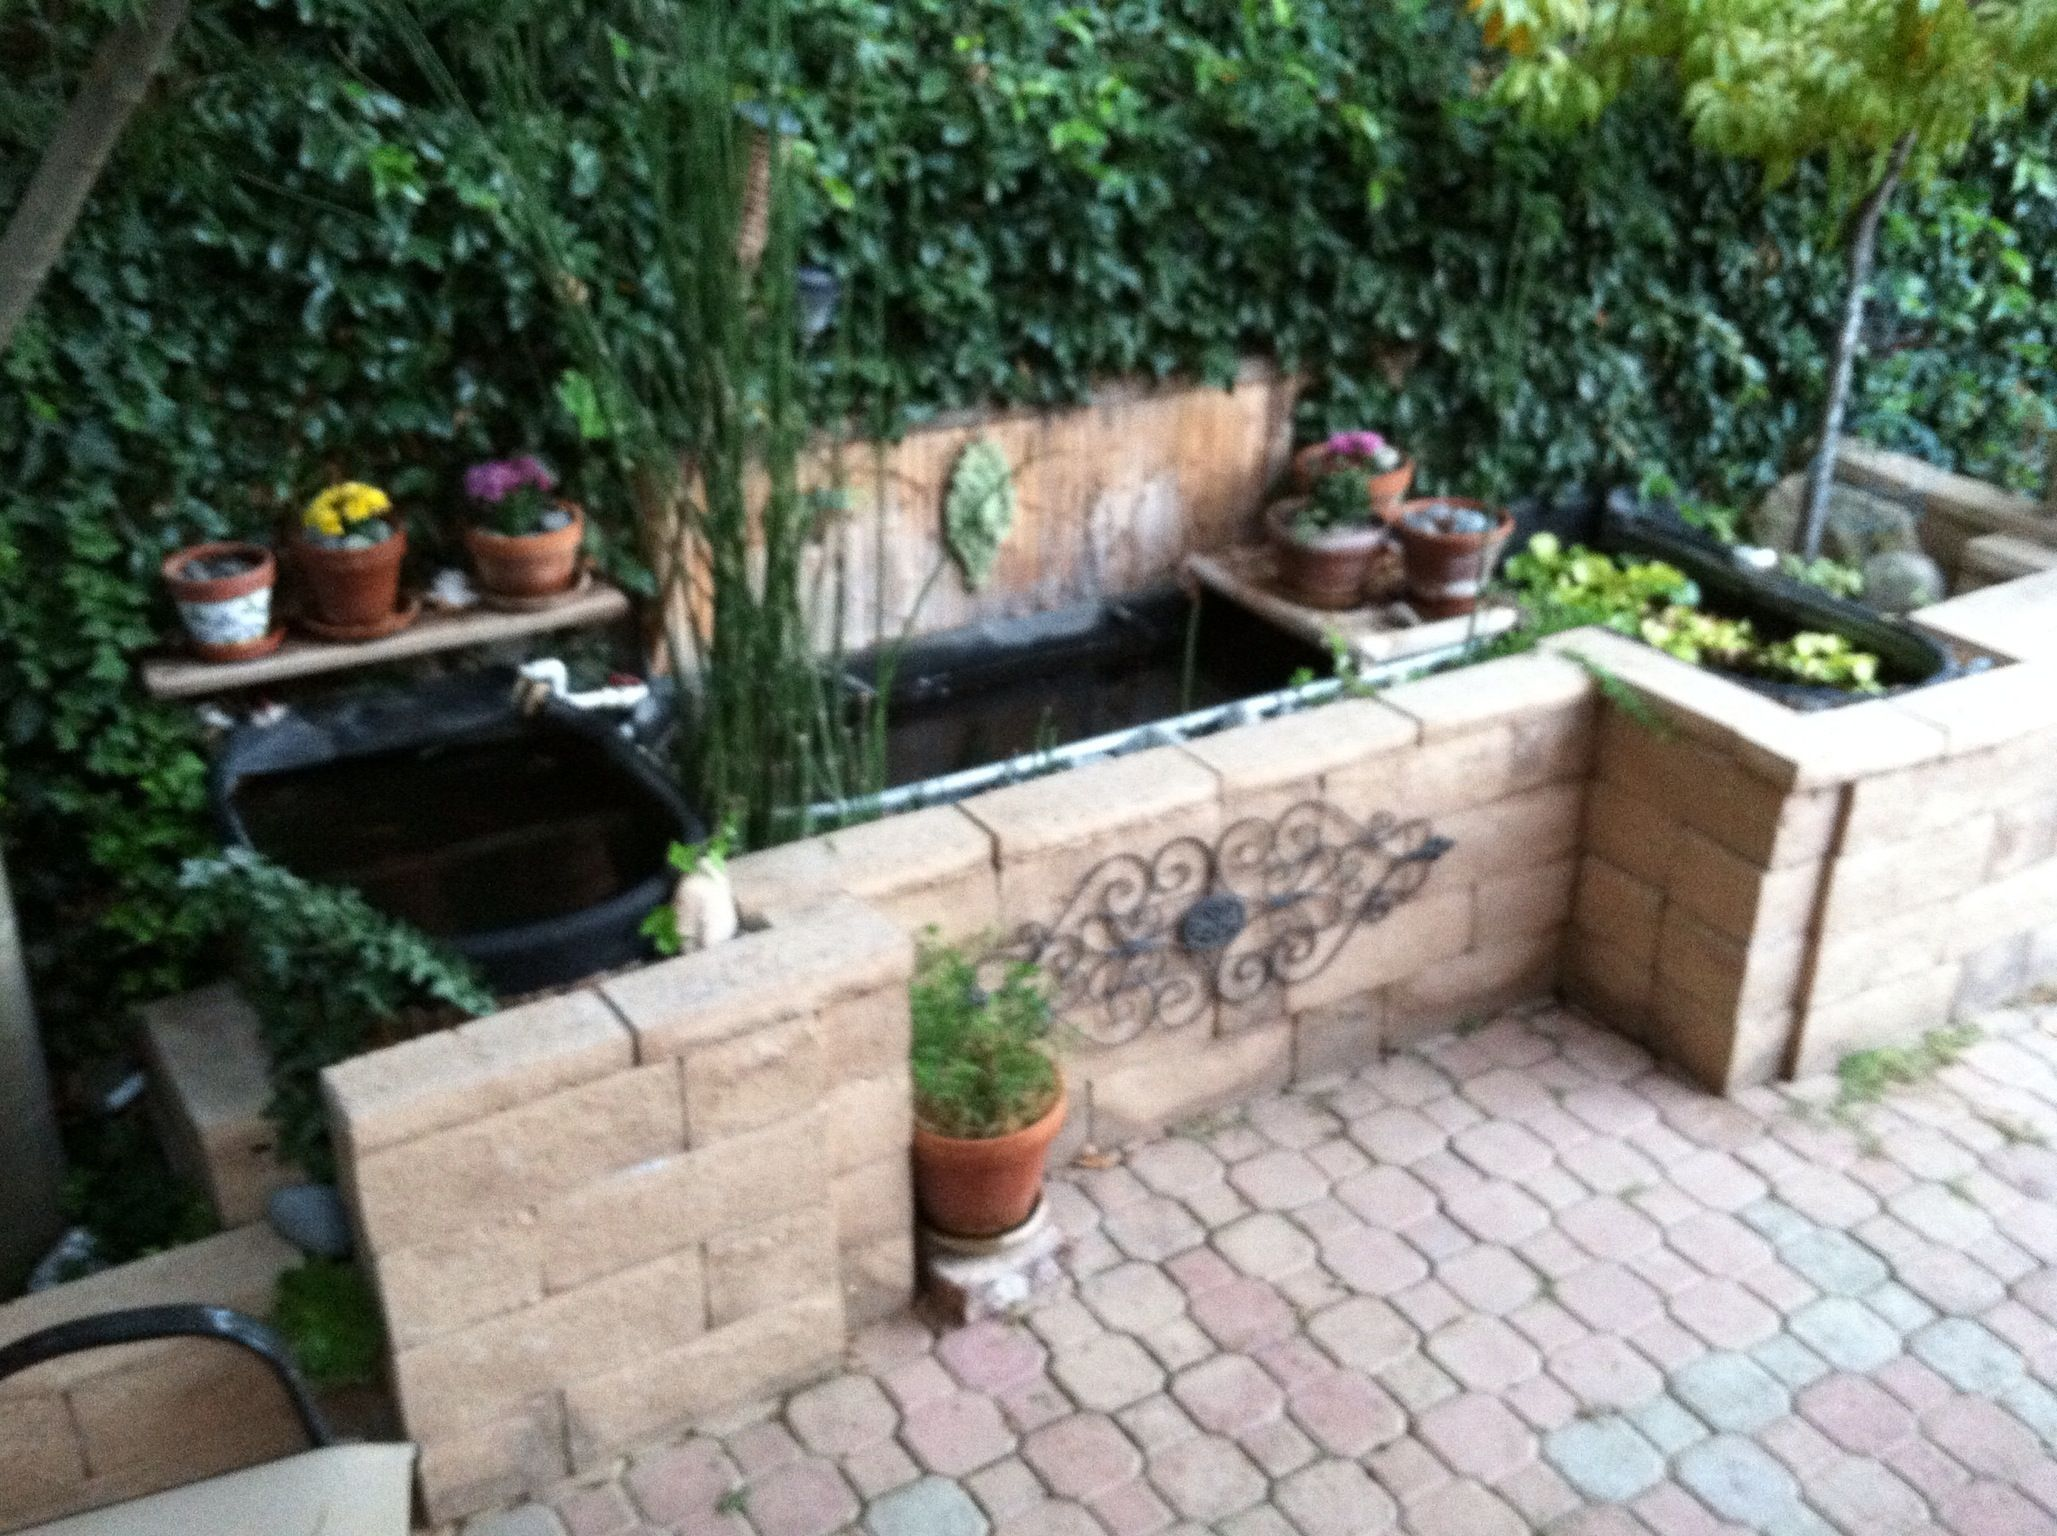 Back yard above ground fish pond gardening pinterest for Above ground koi fish pond